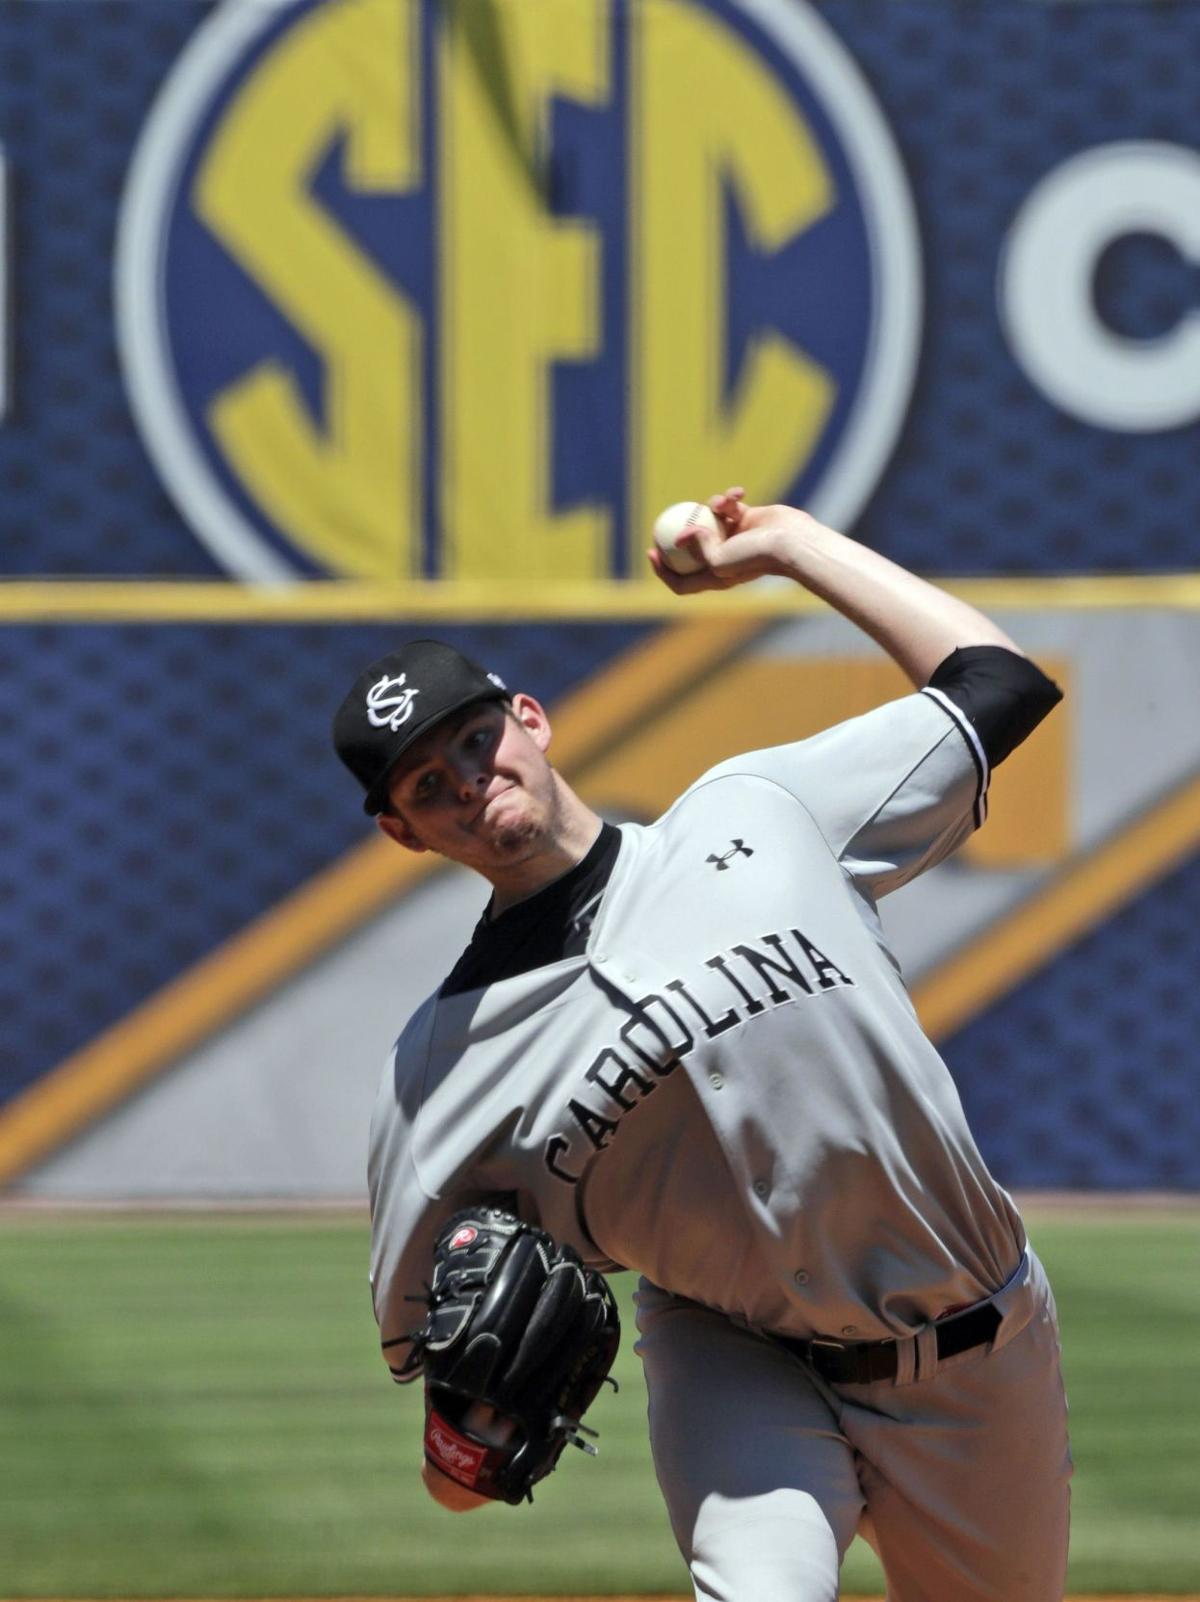 Former USC pitcher Jordan Montgomery assigned to RiverDogs